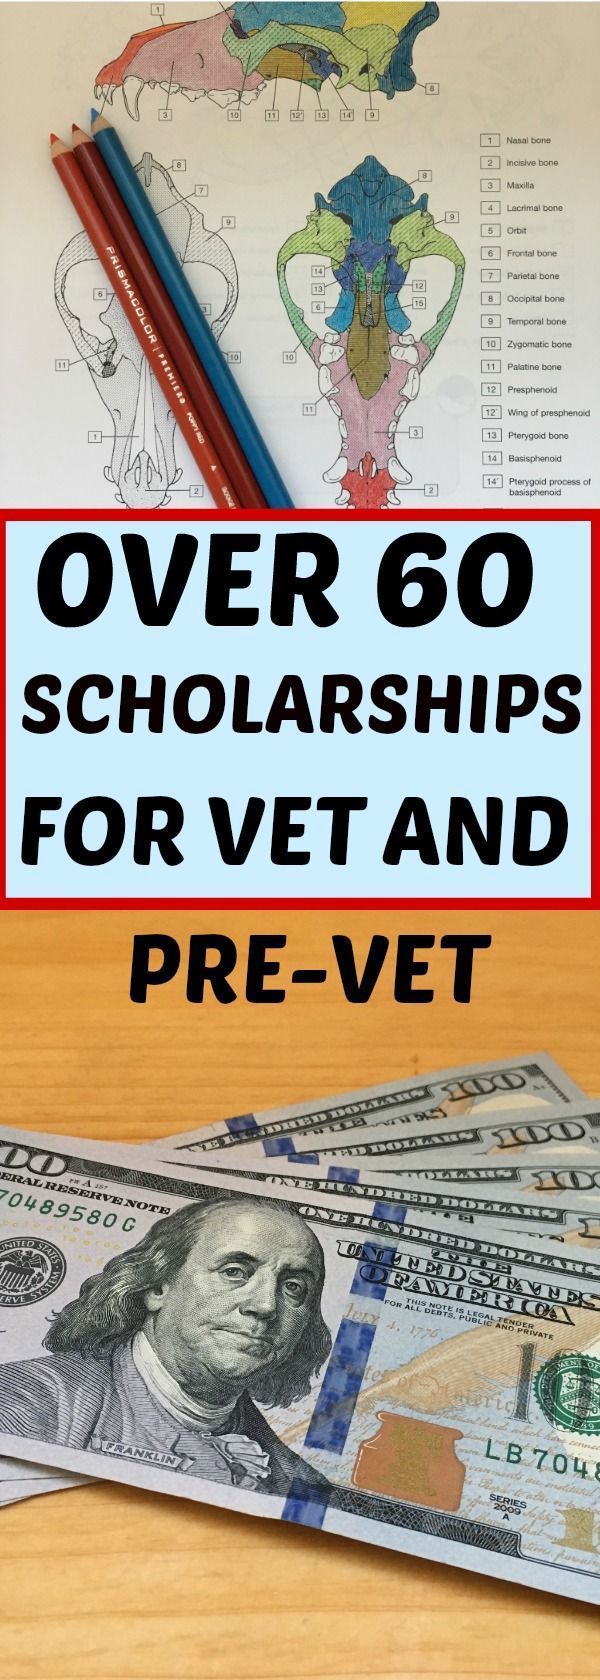 Over 50 Veterinary School Scholarships listed here.  Scholarships and free money for Veterinary residents and students.  #scholarships #collegescholarships #vetstudent #vettechlife #veterinaryscholarships #freemoney #vetschool